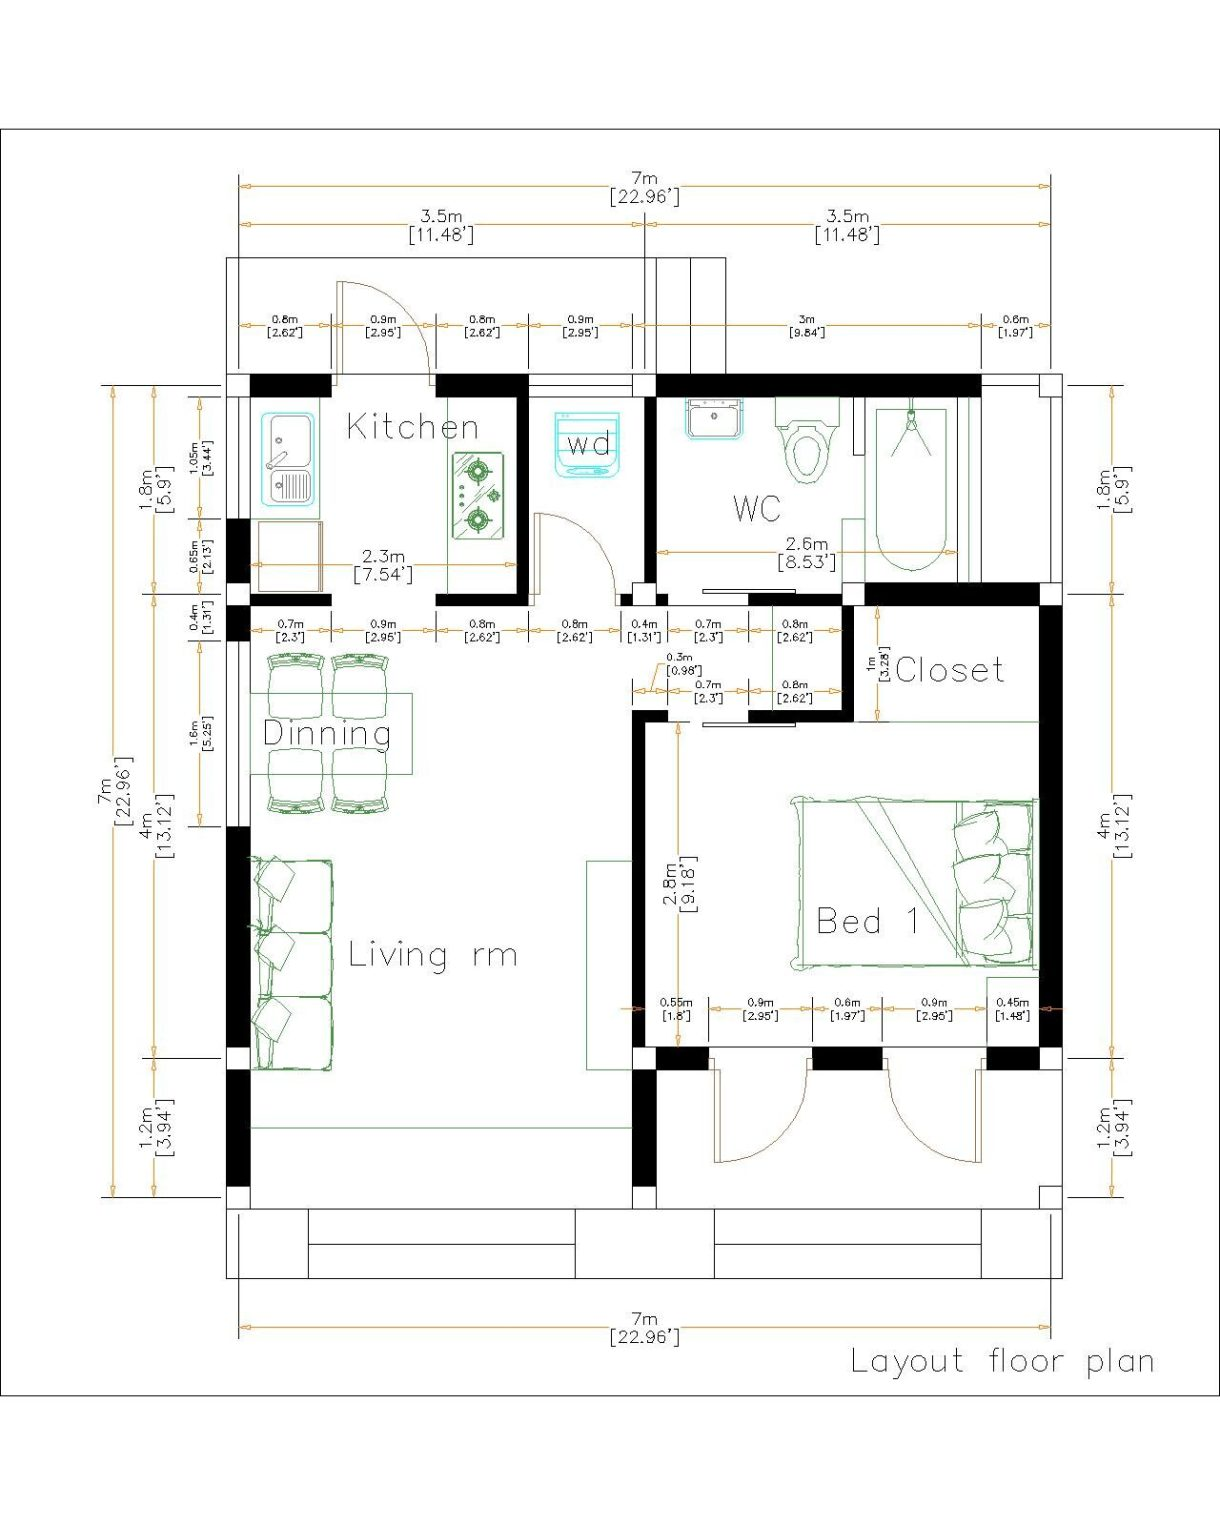 Small House Design 7x7 Meter 23x23 Feet One Bed Layout floor plan